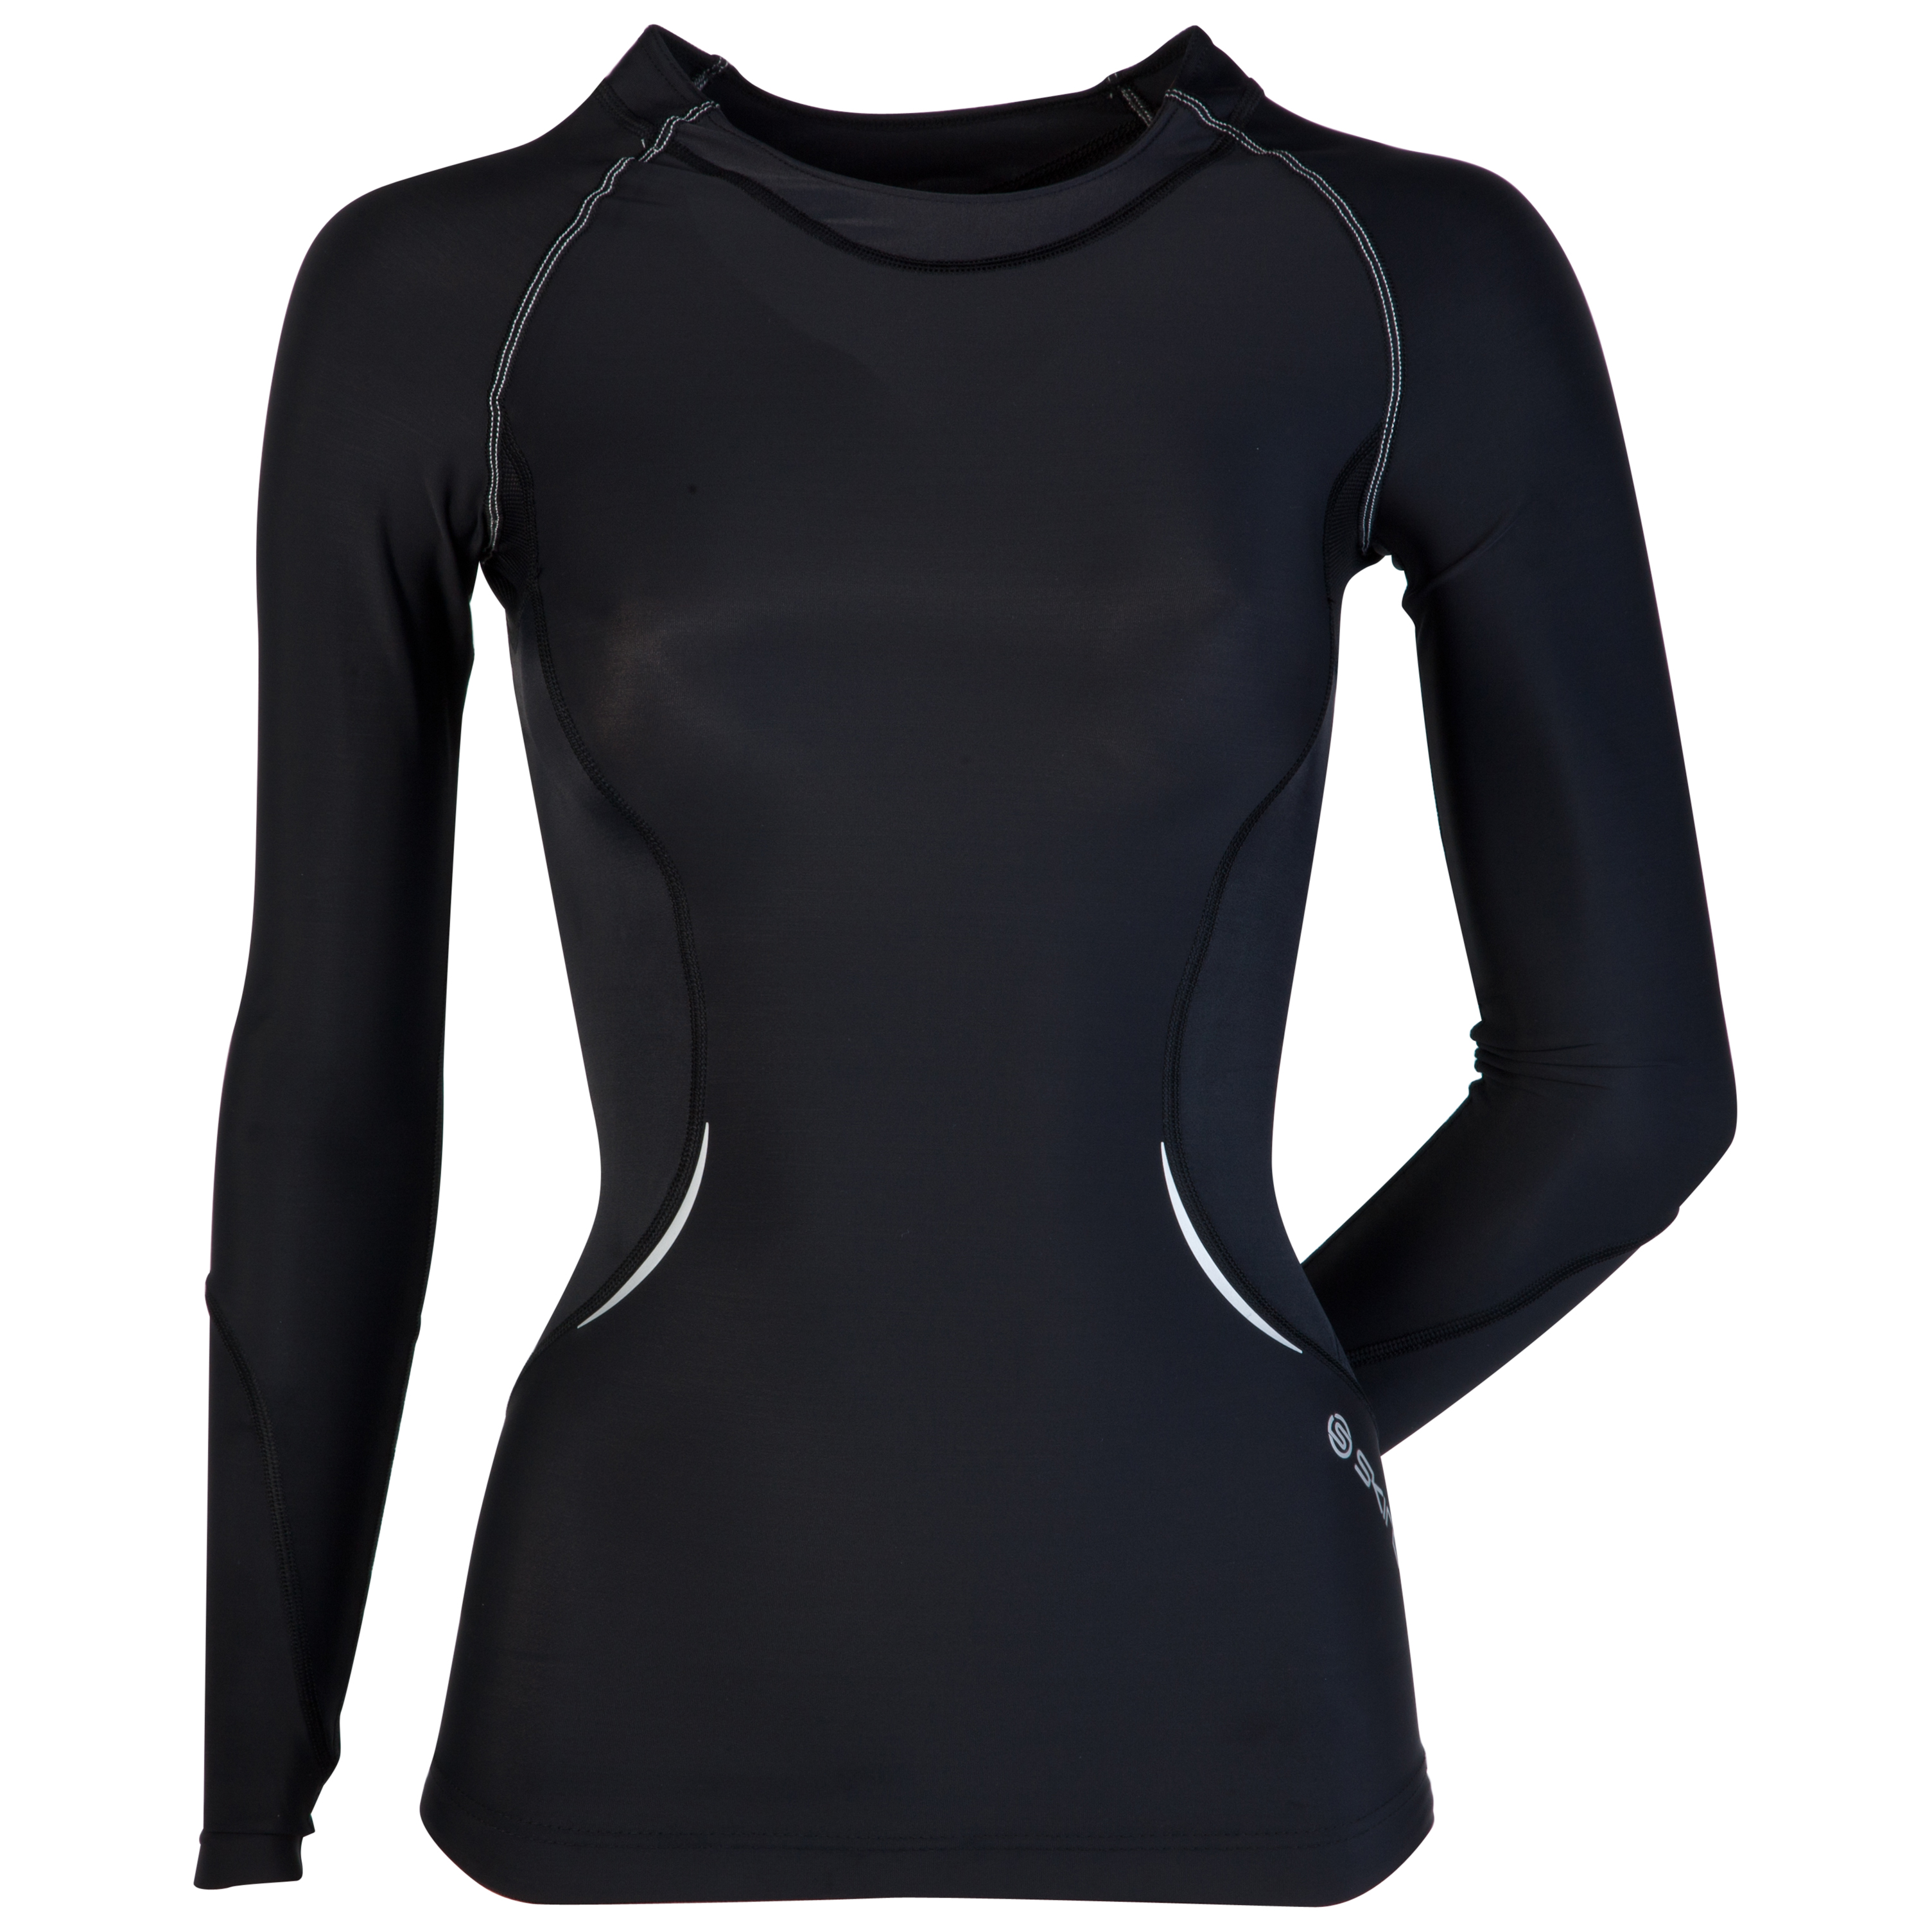 Skins A400 Active Long Sleeve Top - Black/Silver - Womens